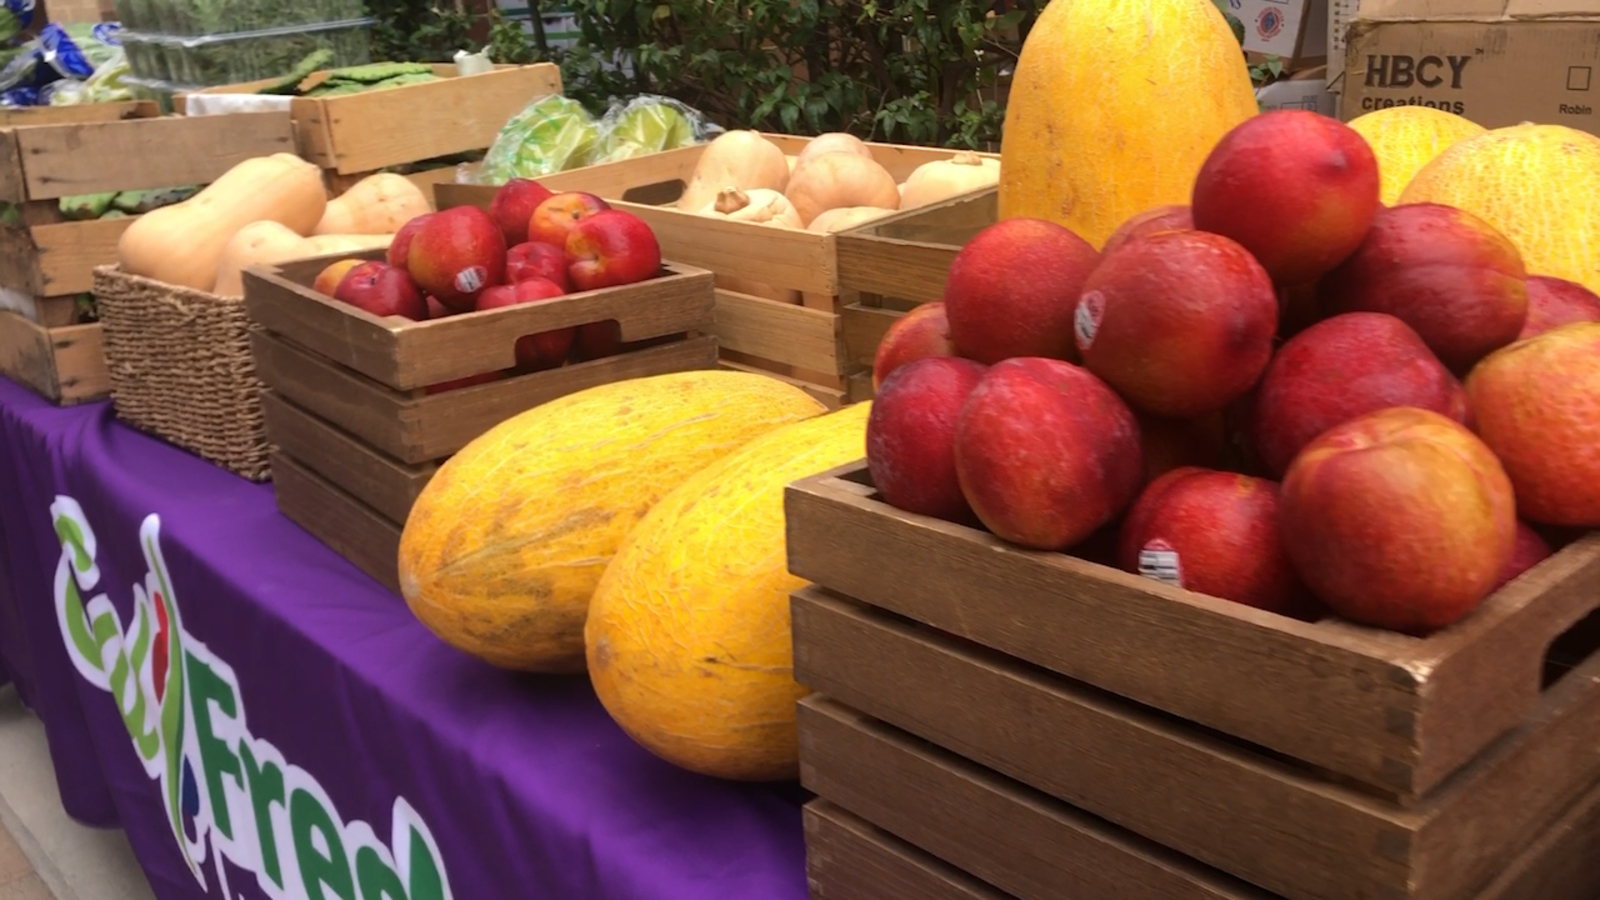 Pop-up farmers market giving free produce in the SFV